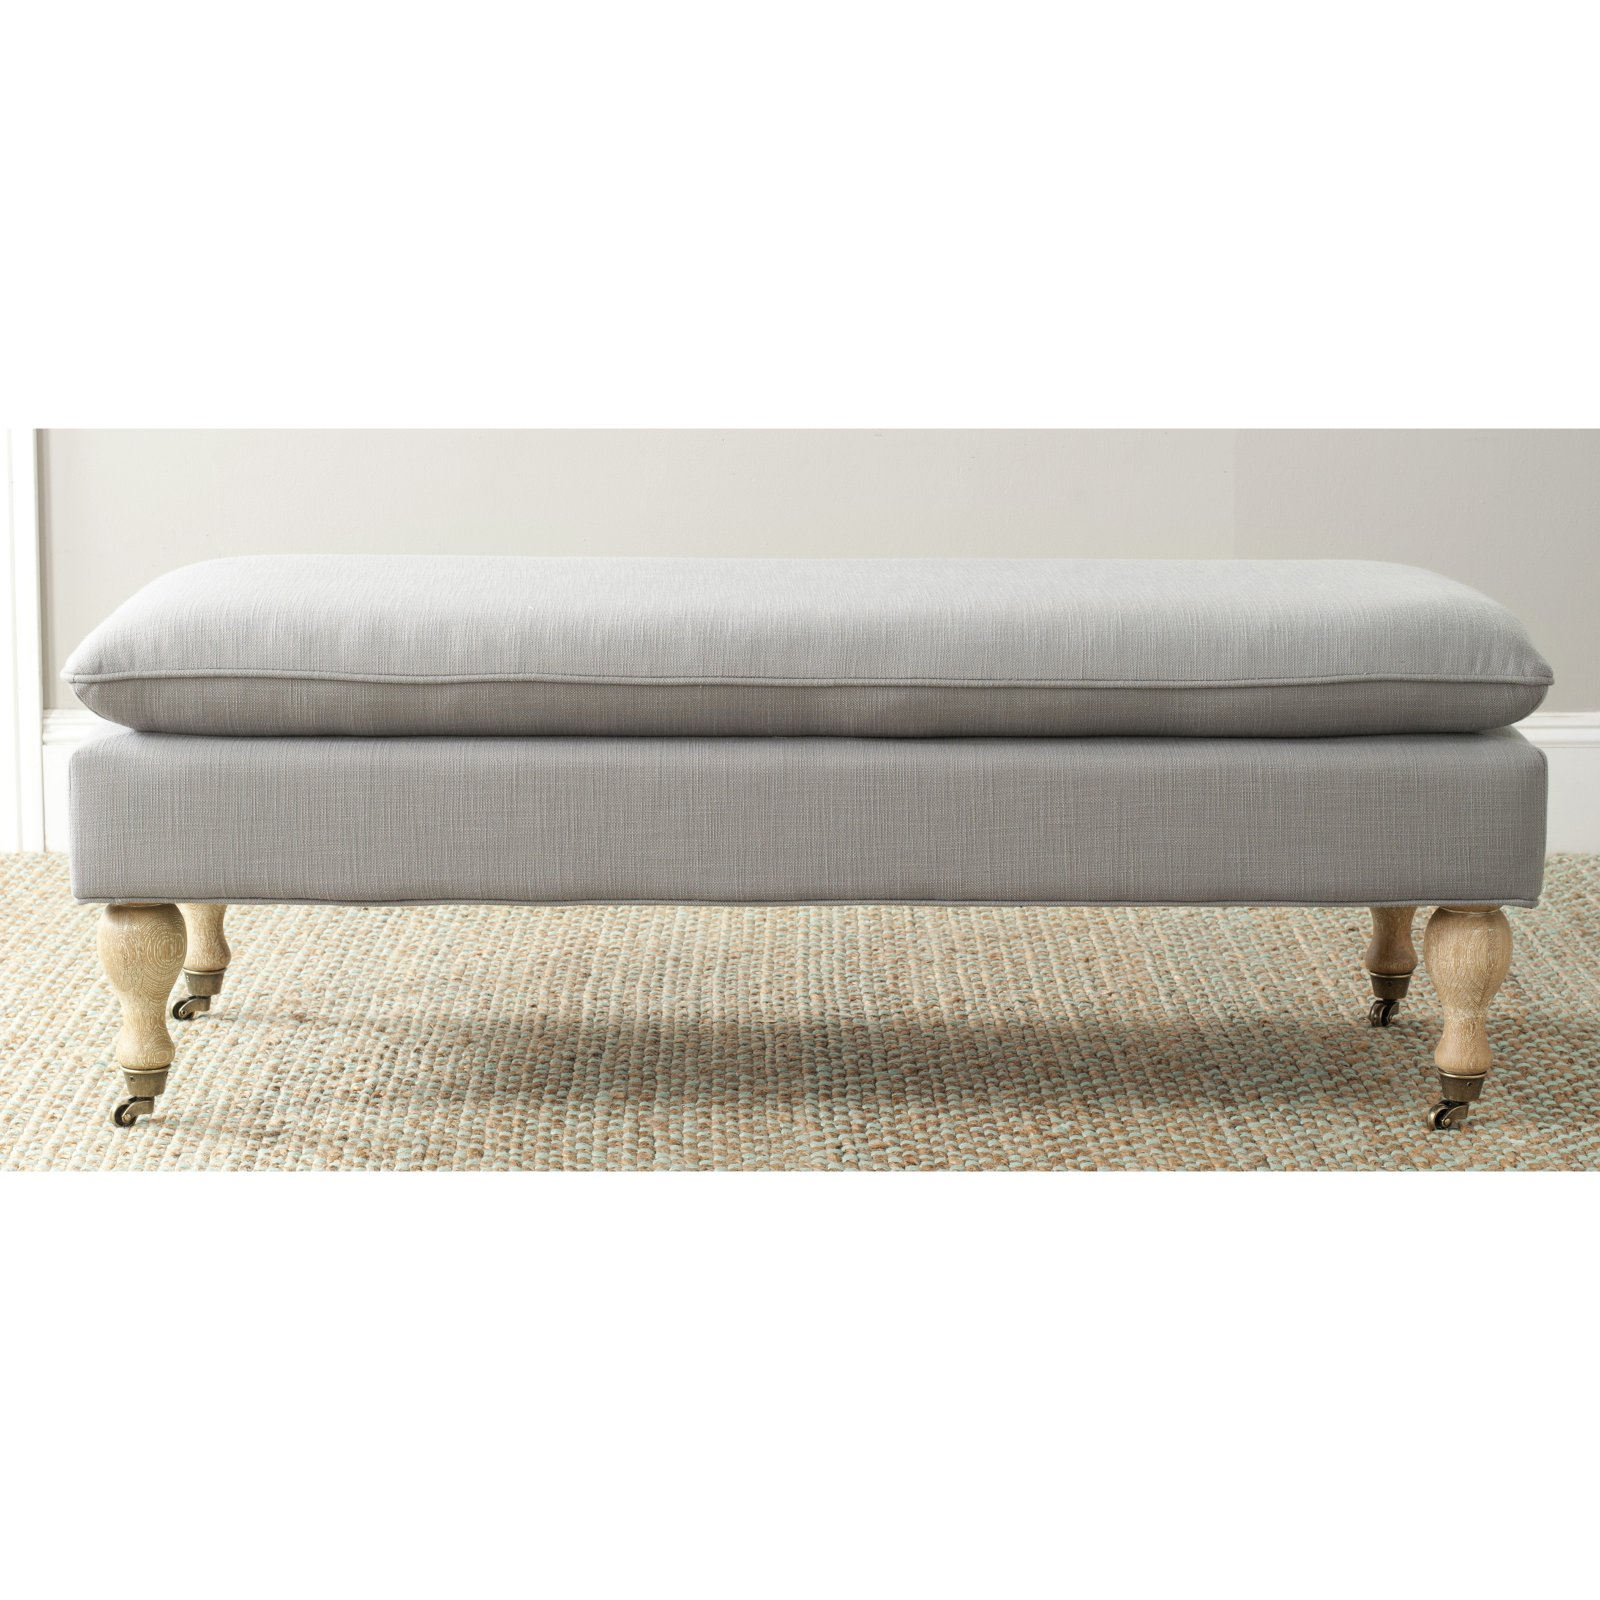 Safavieh Hampton Upholstered Pillowtop Bench